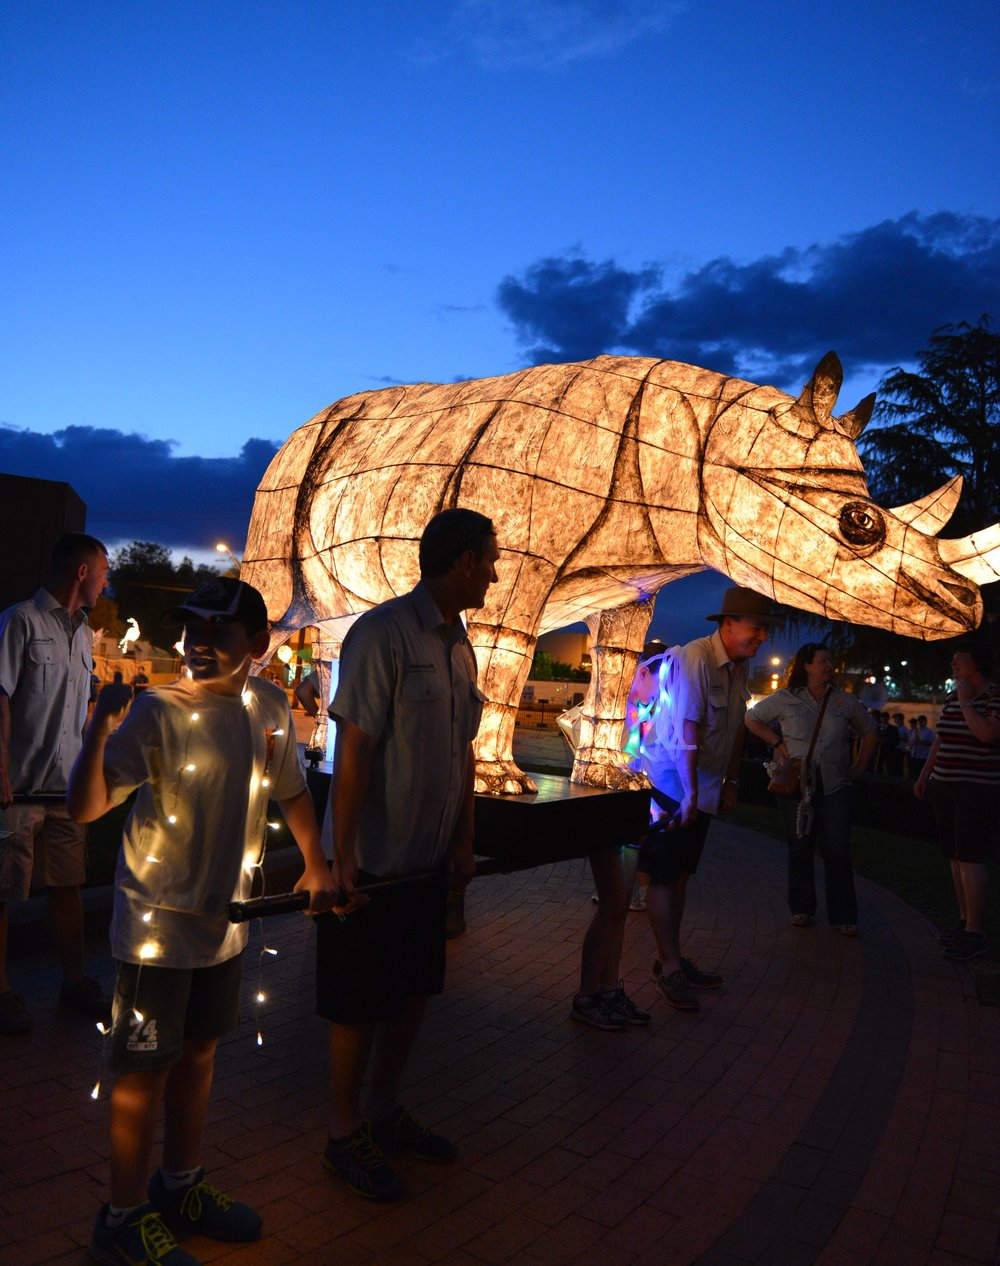 Photo: LANTERN PARADE 'Magical lantern sculptures display' taking place in the Dubbo CBD